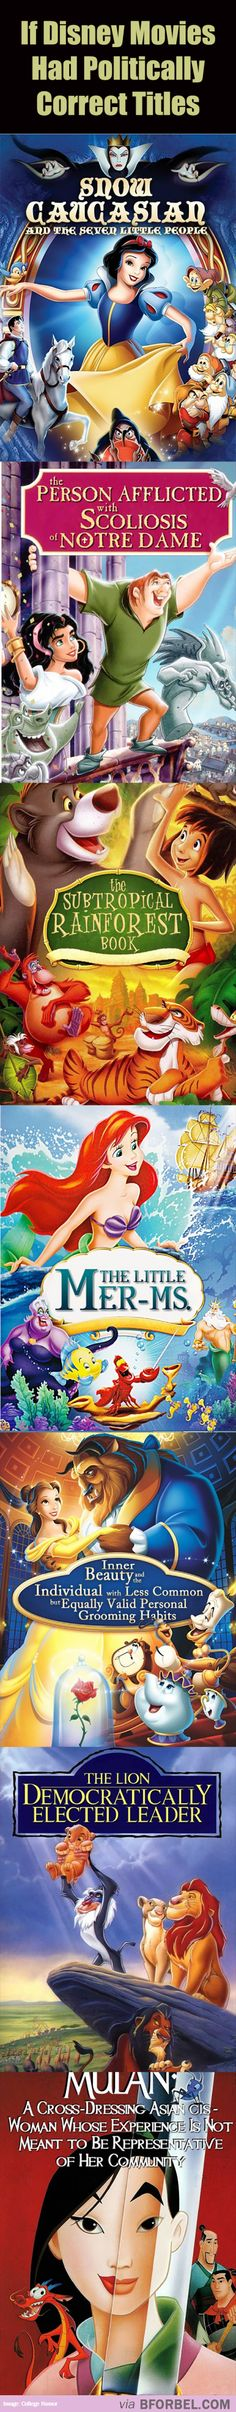 7 Disney Movies With Politically Correct Titles…hahaha our society is so sad it's hilarious!